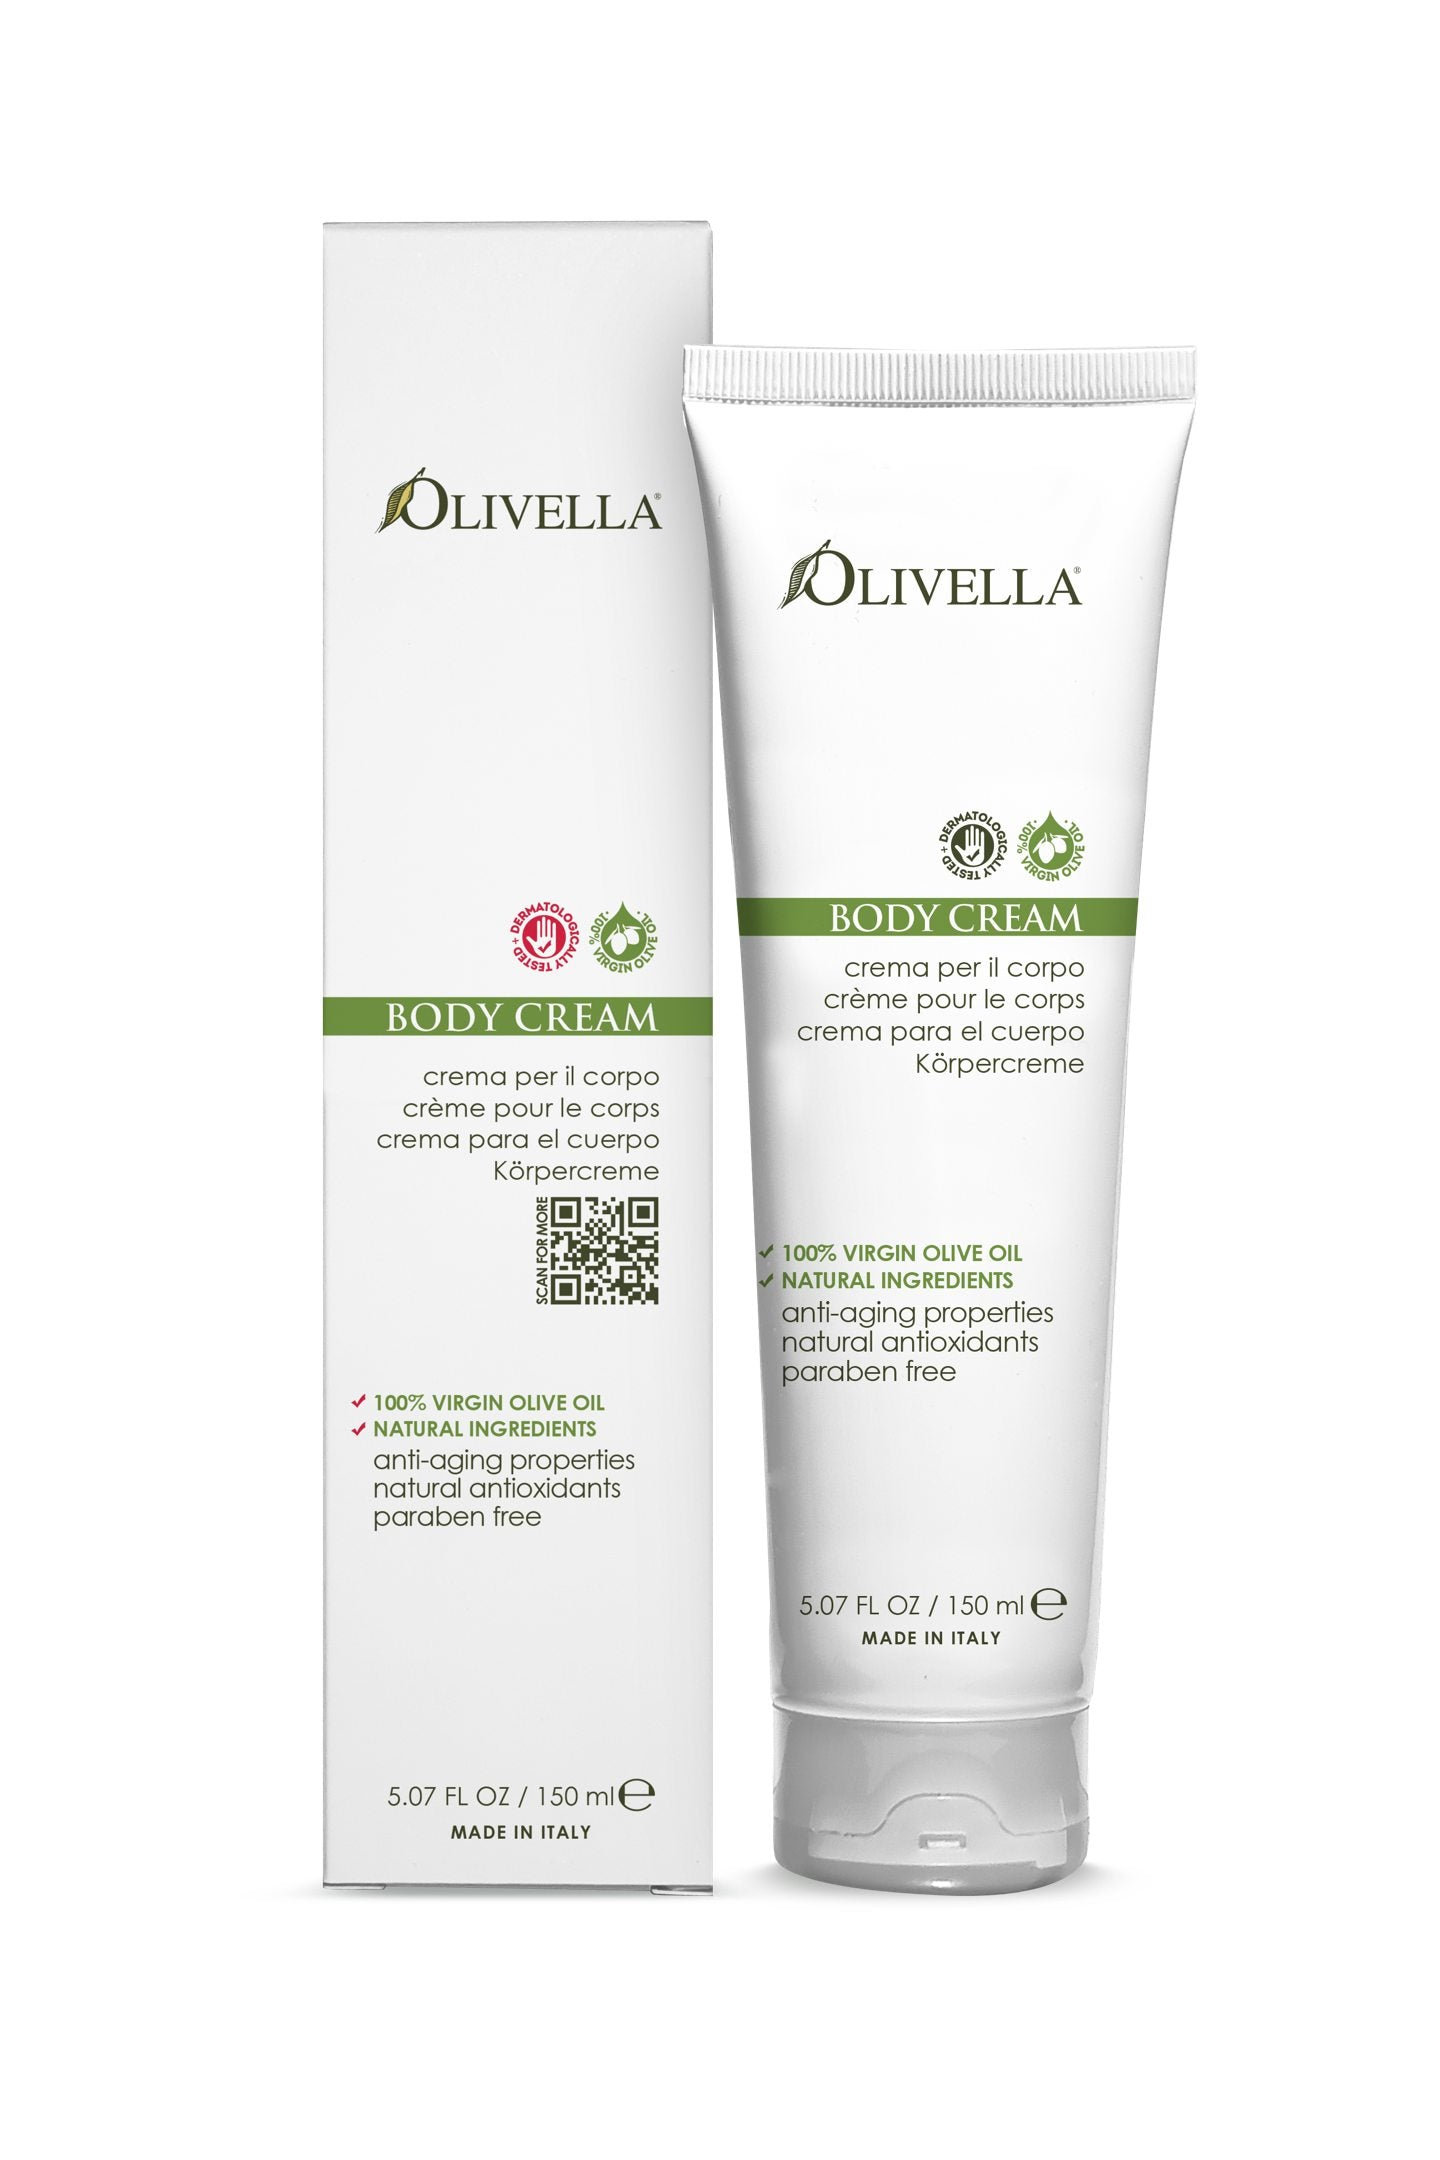 Olivella Body Cream 5.07 Oz - Olivella